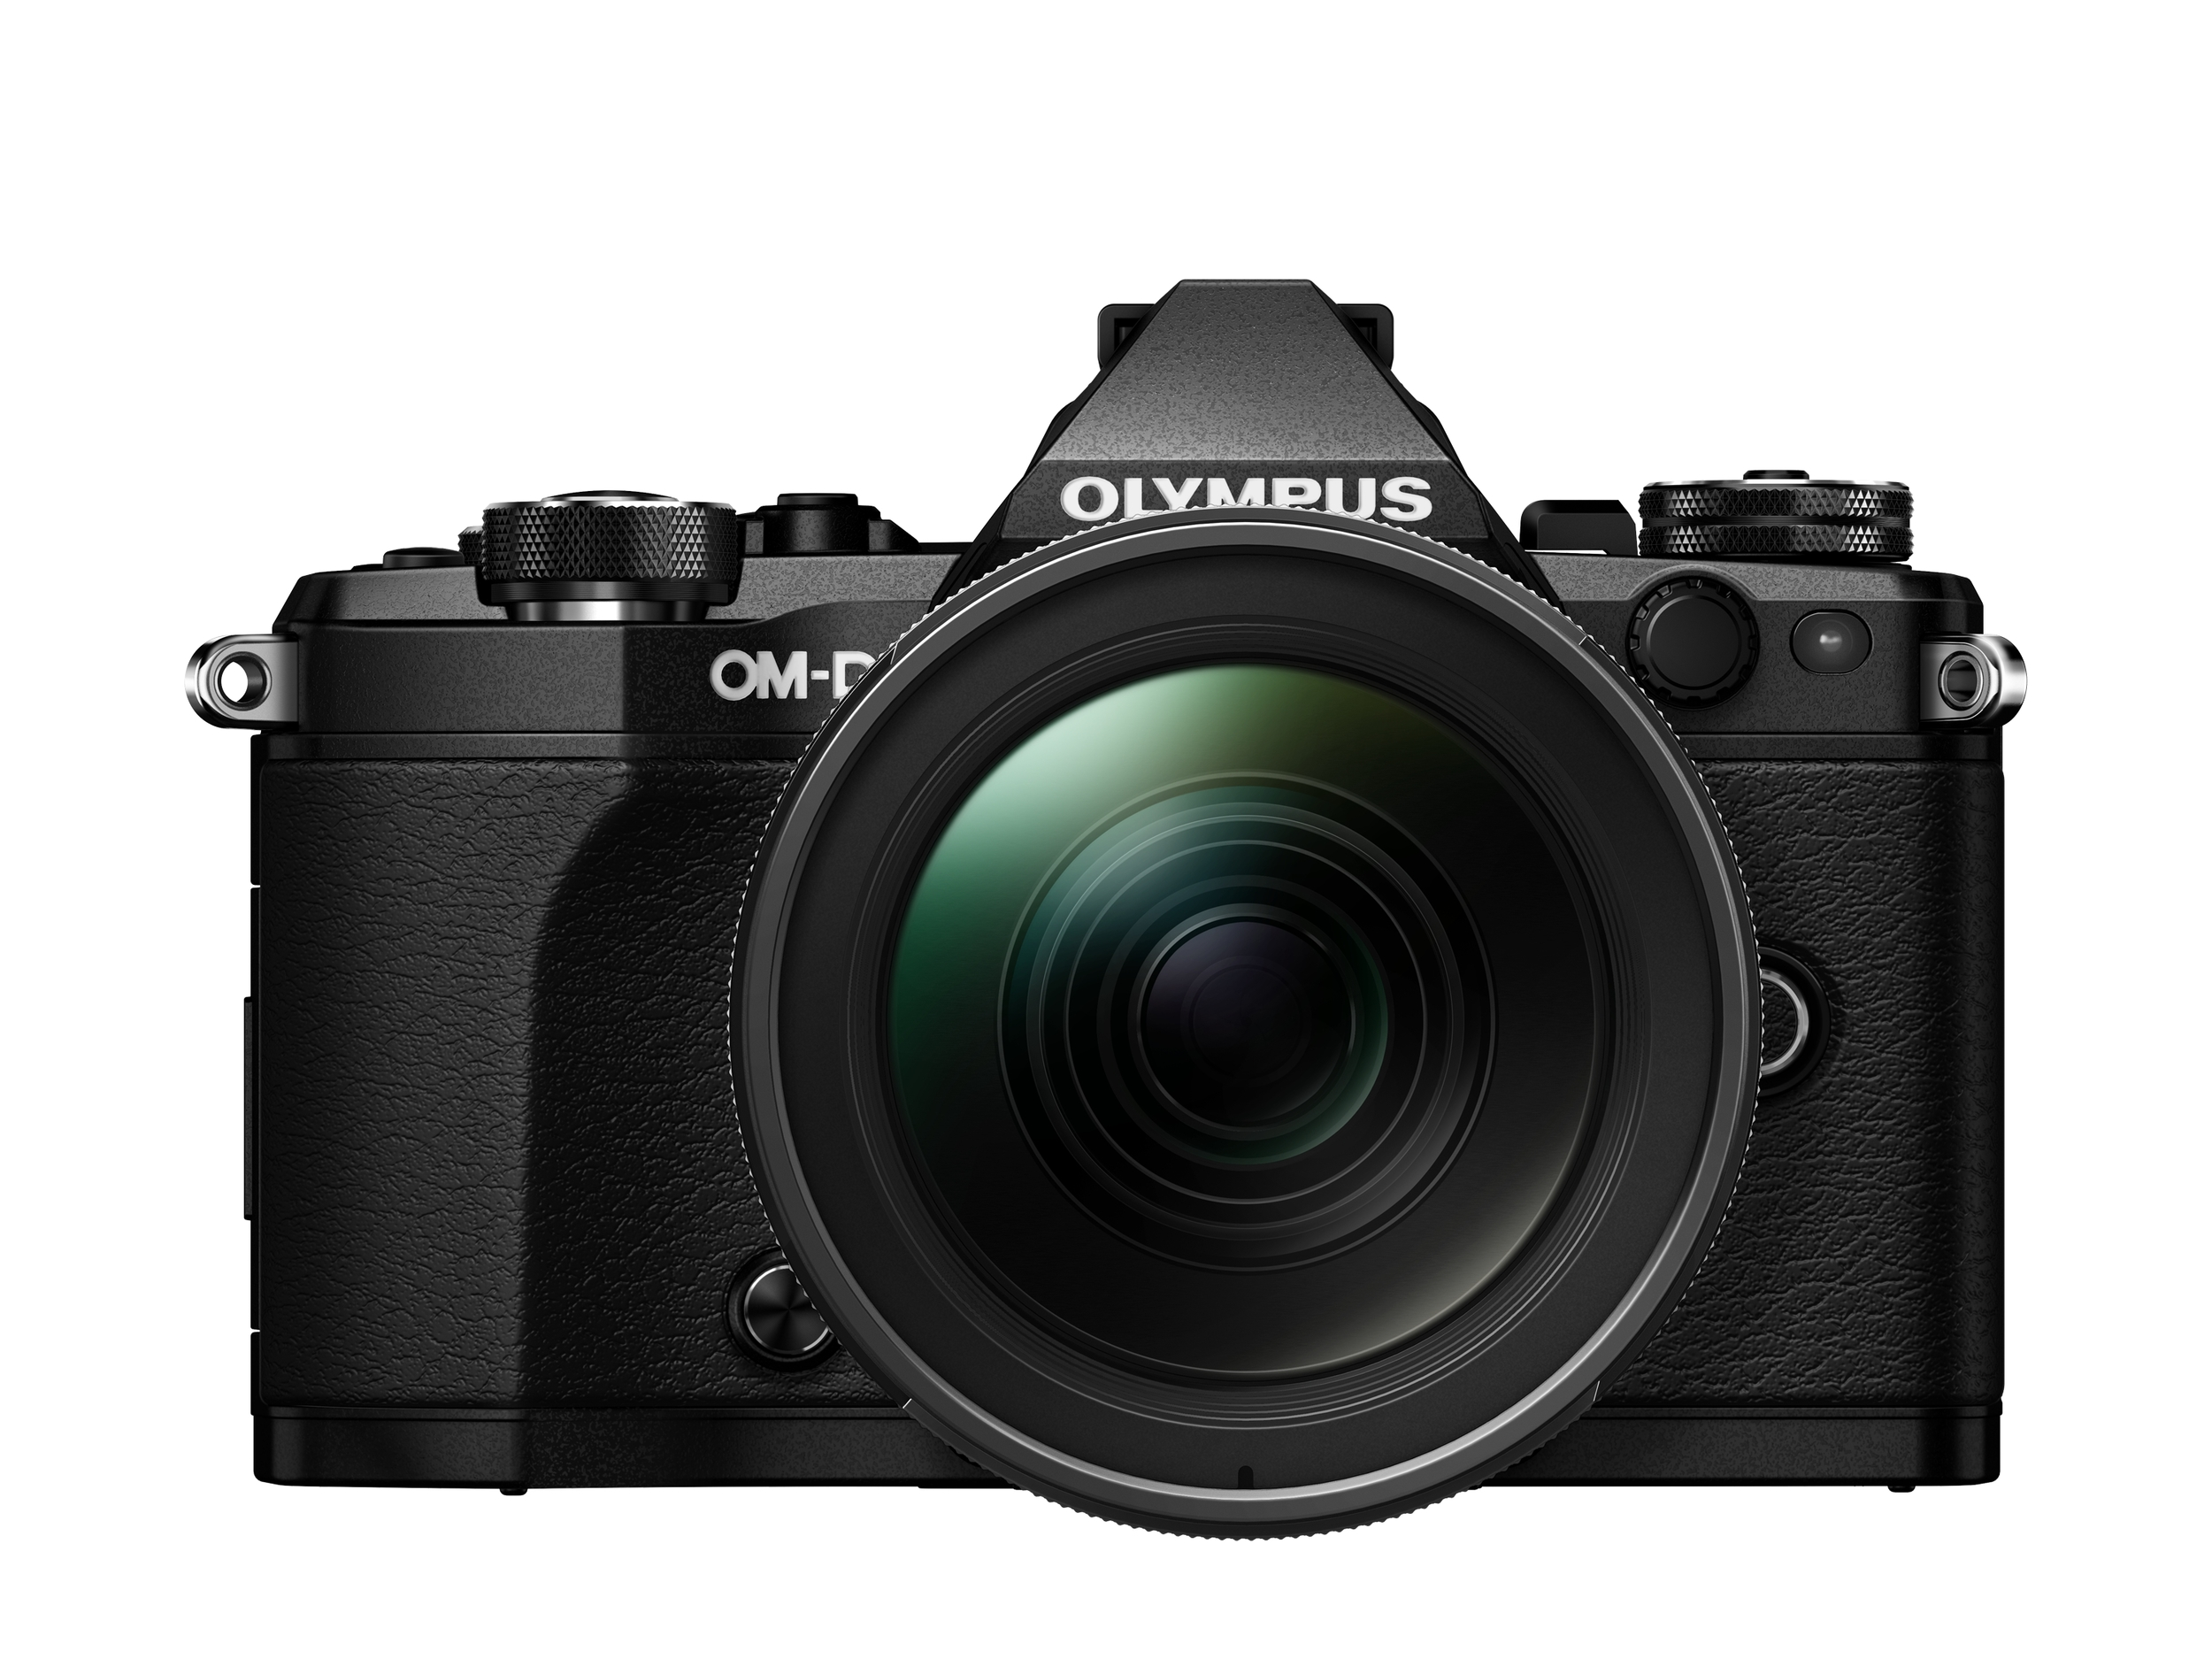 OM-D_E-M5_Mark_II_EZ-M1240_black__Product_000.jpg